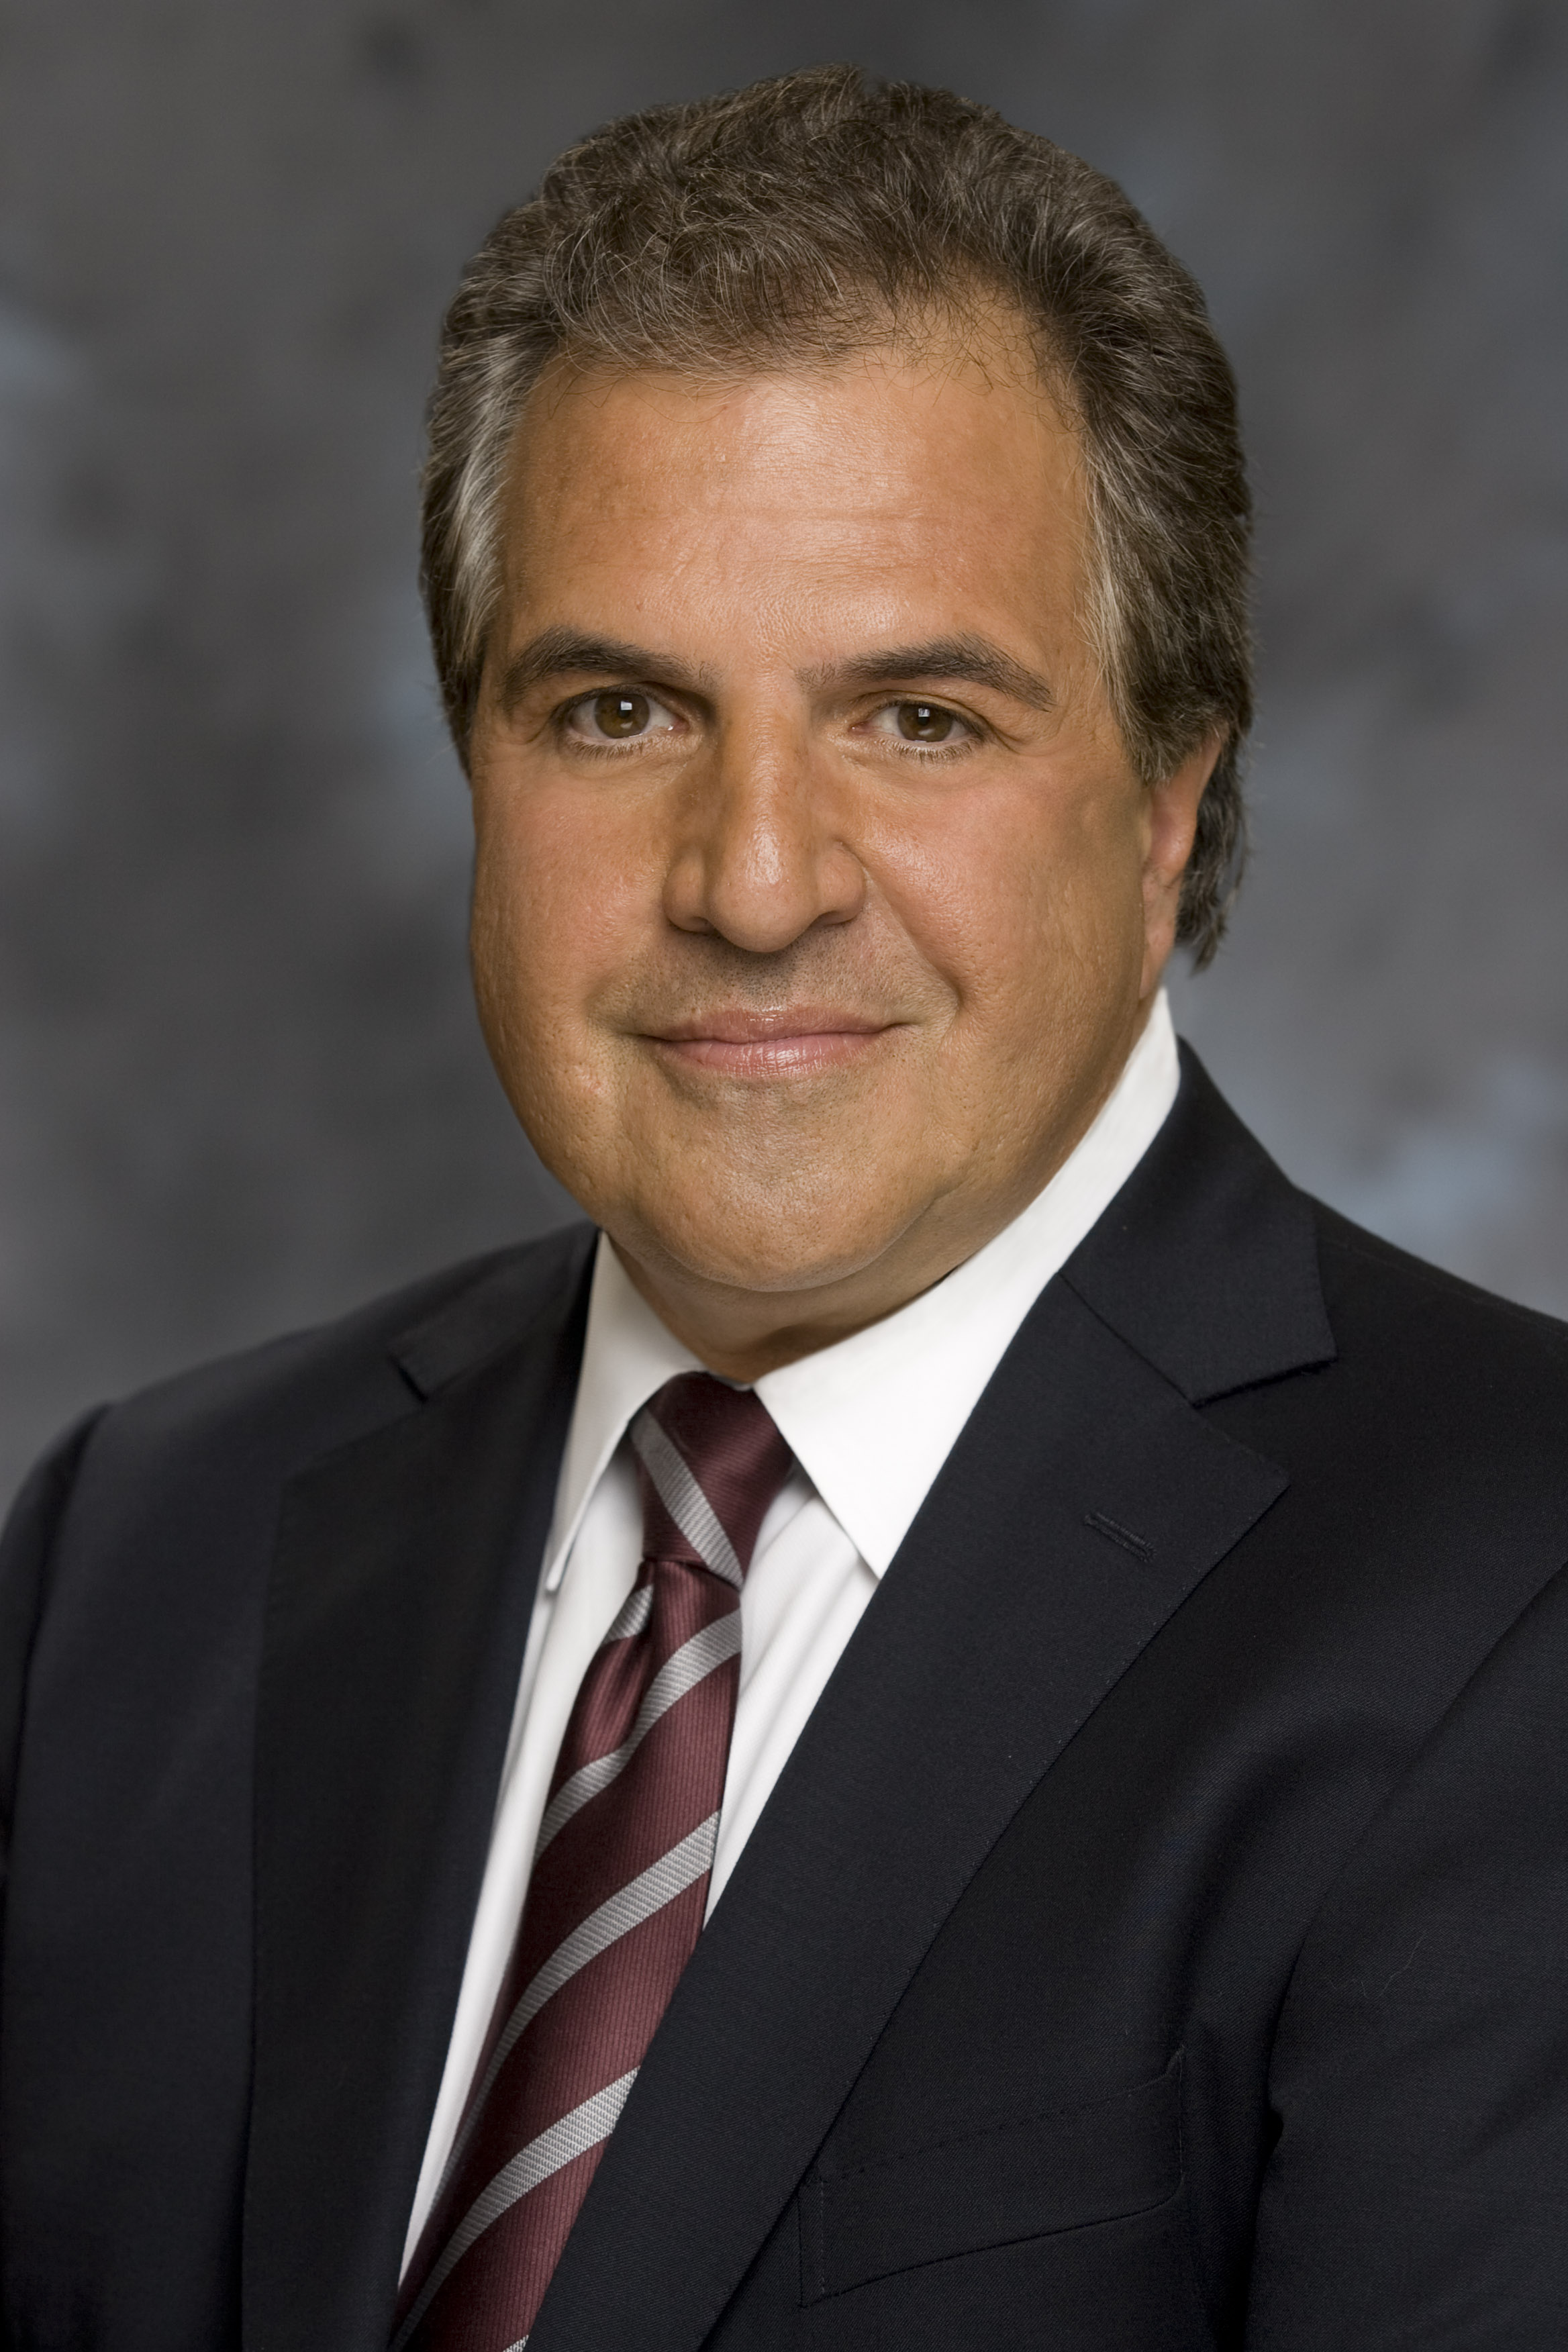 Jim Gianopulos, Chairman and CEO of Fox Filmed Entertainment